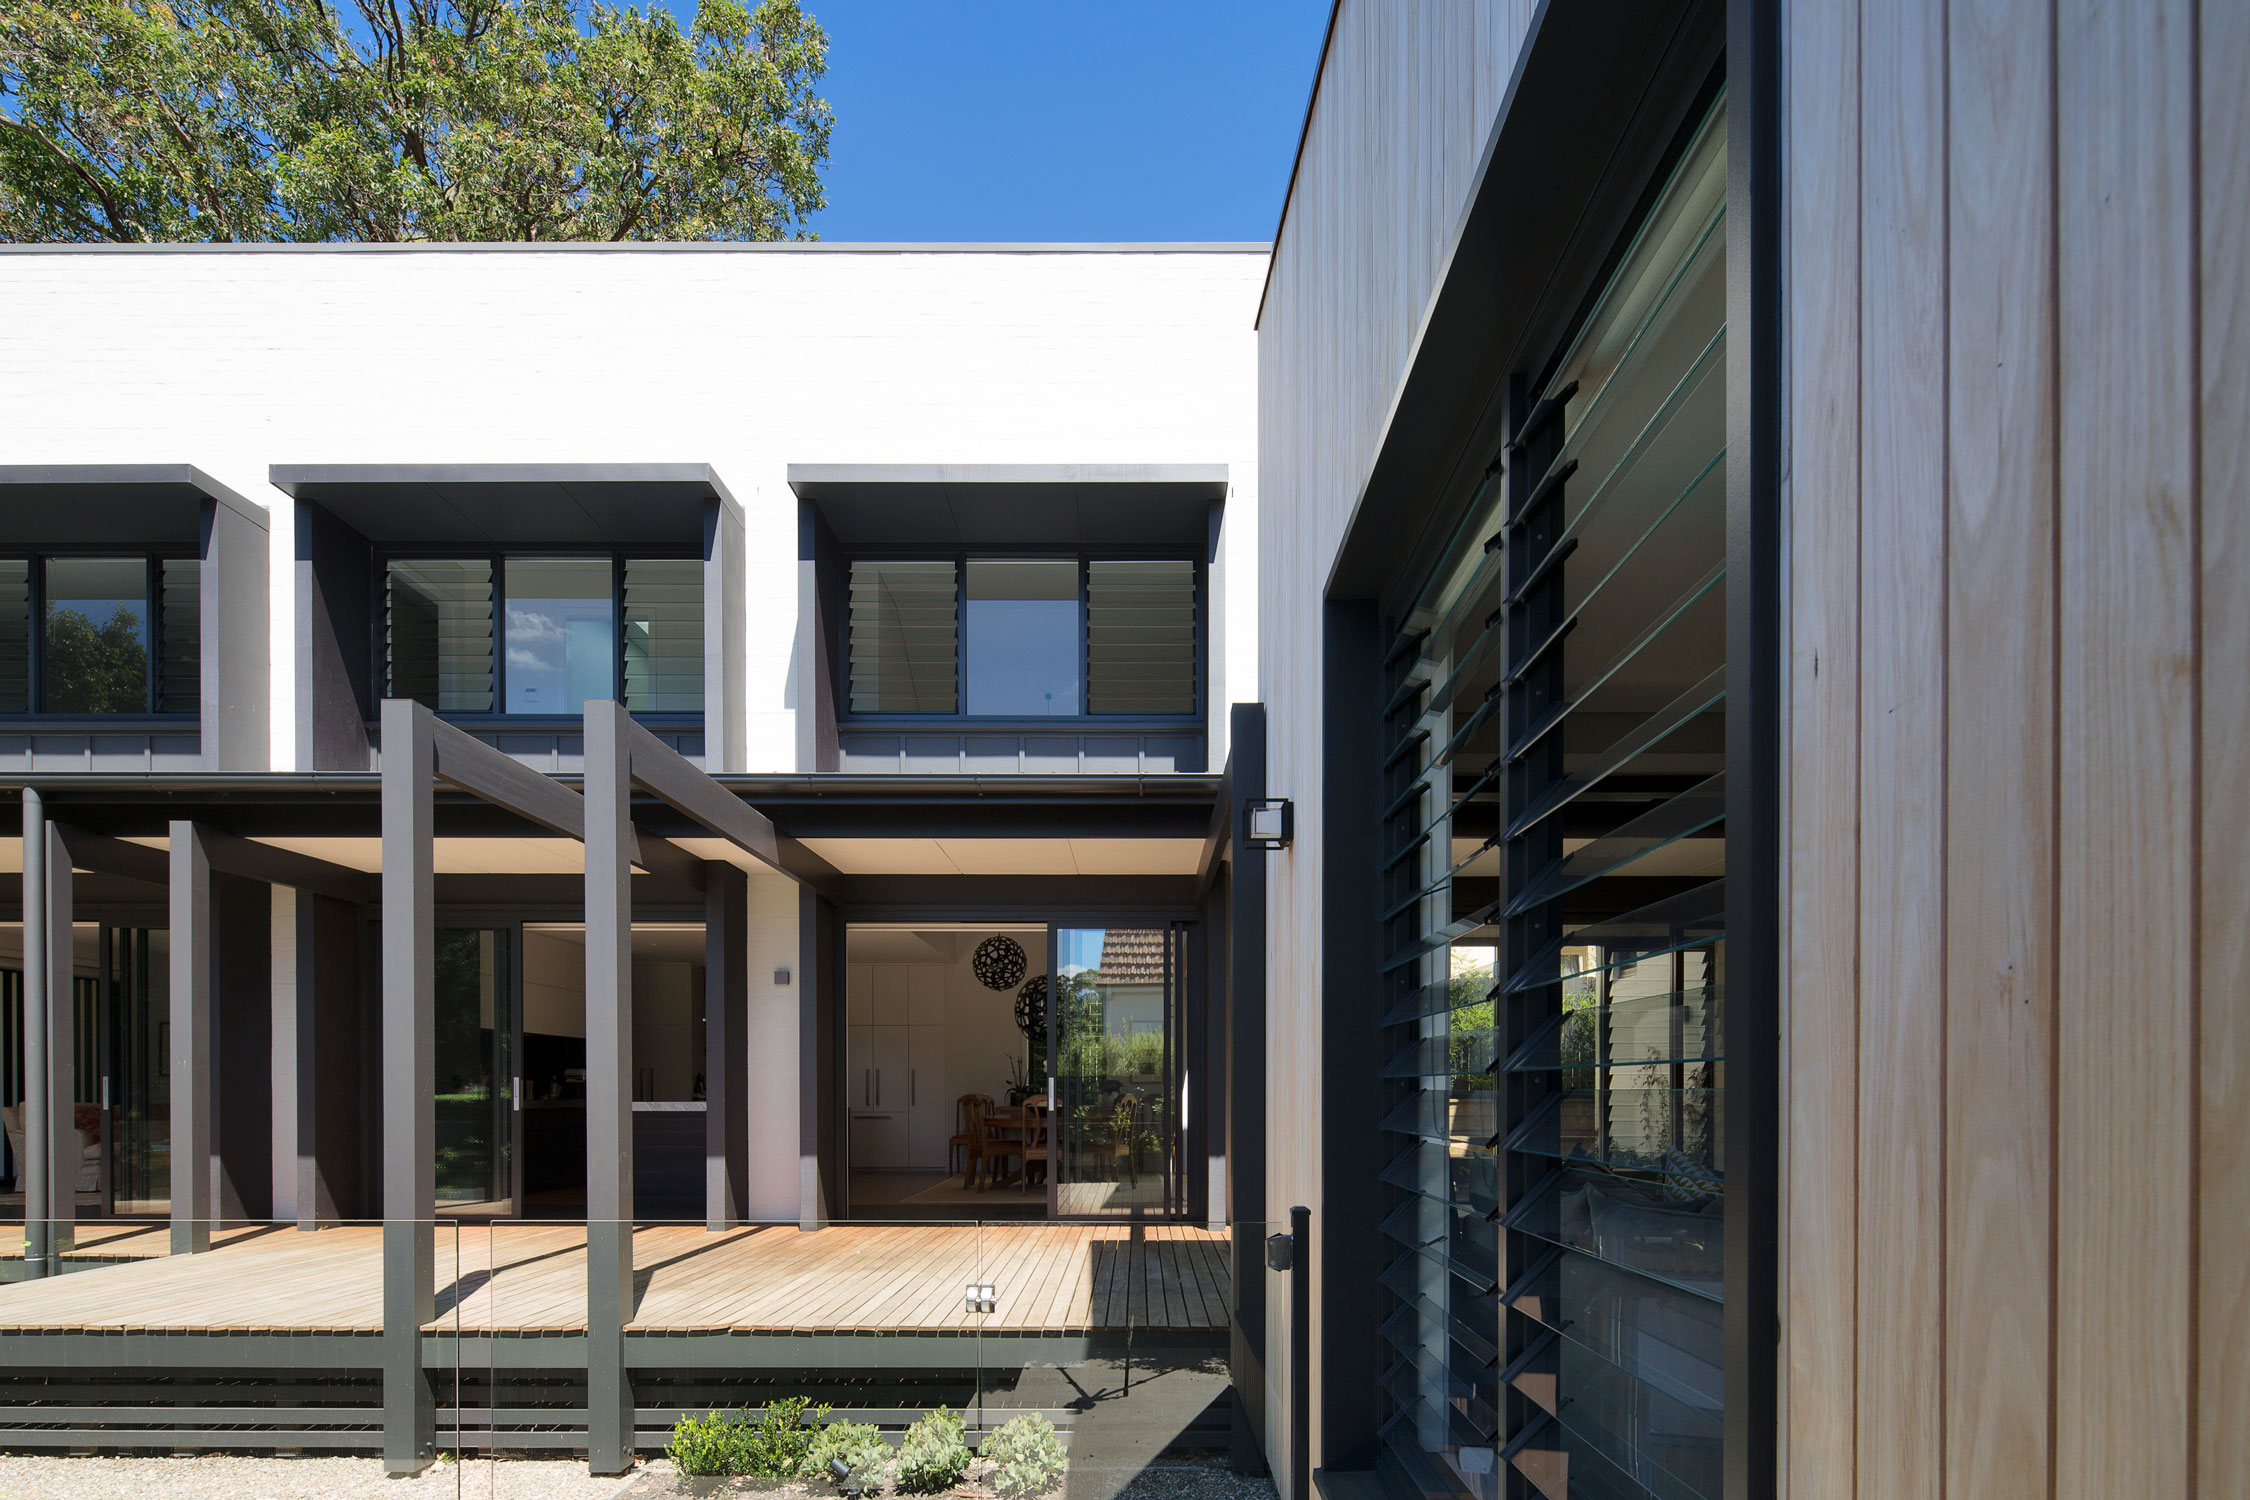 Garden House Is A Play On The Gable Style Roof Where A Modest Overall Mass Is Dismantled Into Contextually Appropriate Geometries